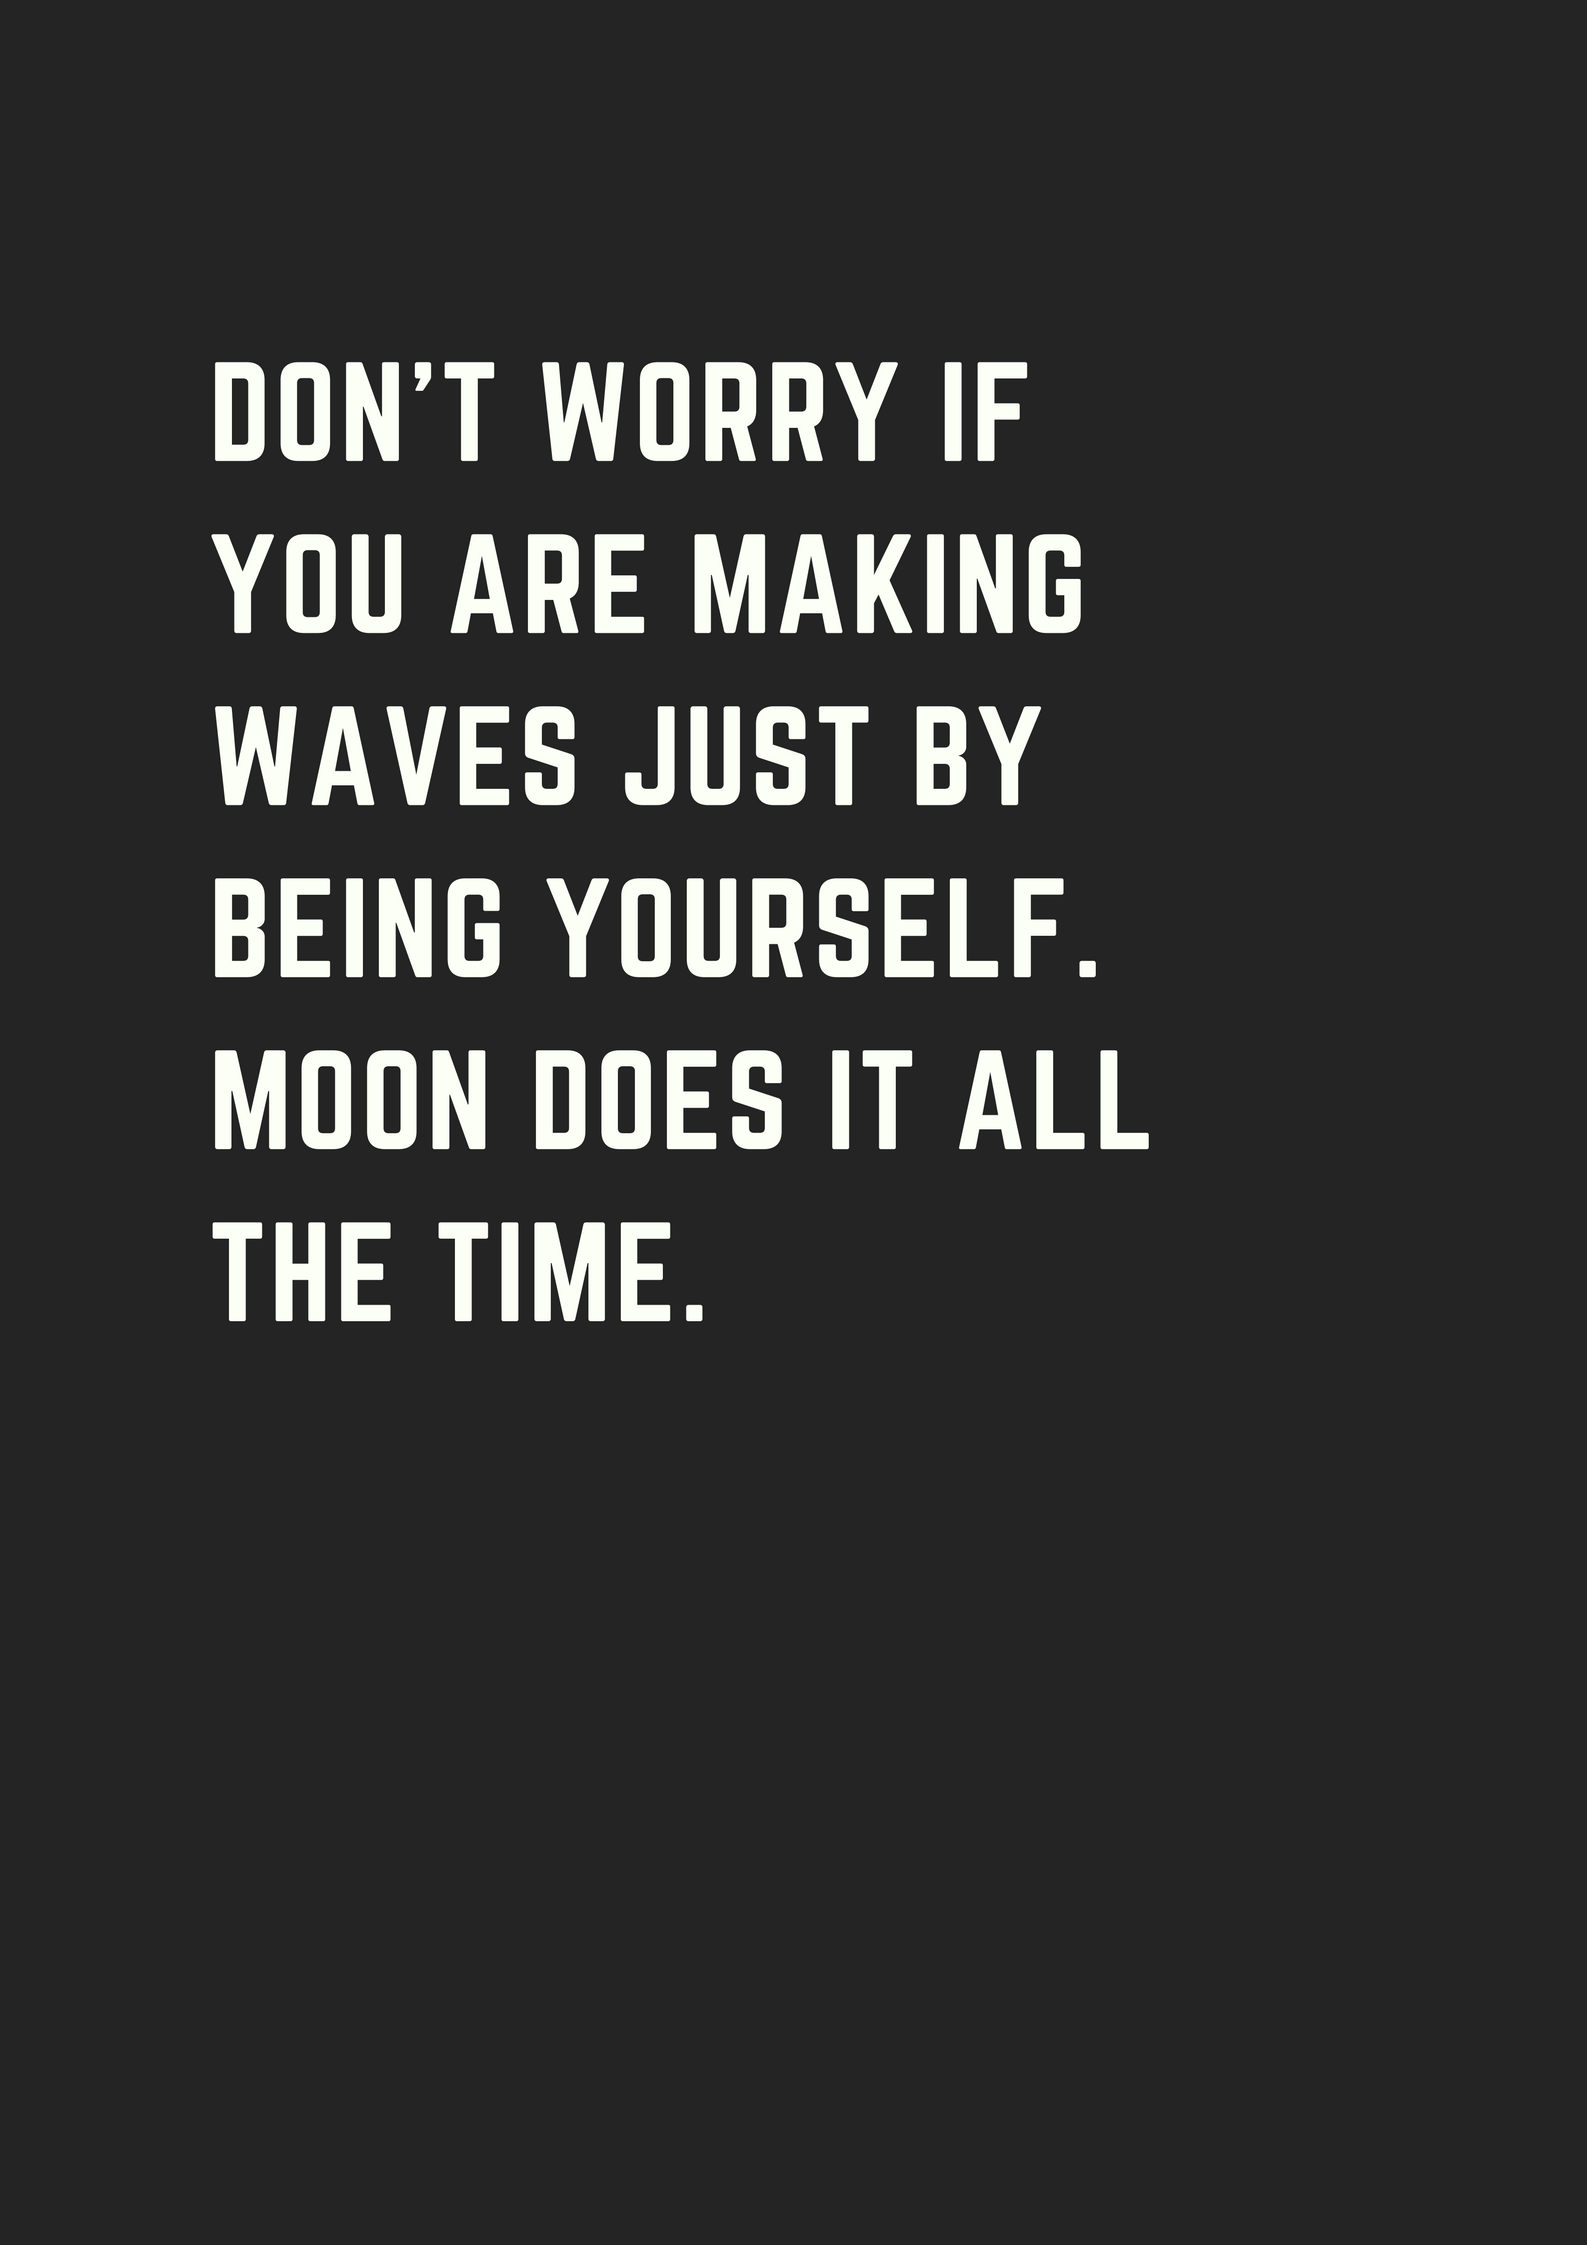 Best Black And White Inspirational Quotes Black Inspirational Quotes Life Quotes Quotes To Live By